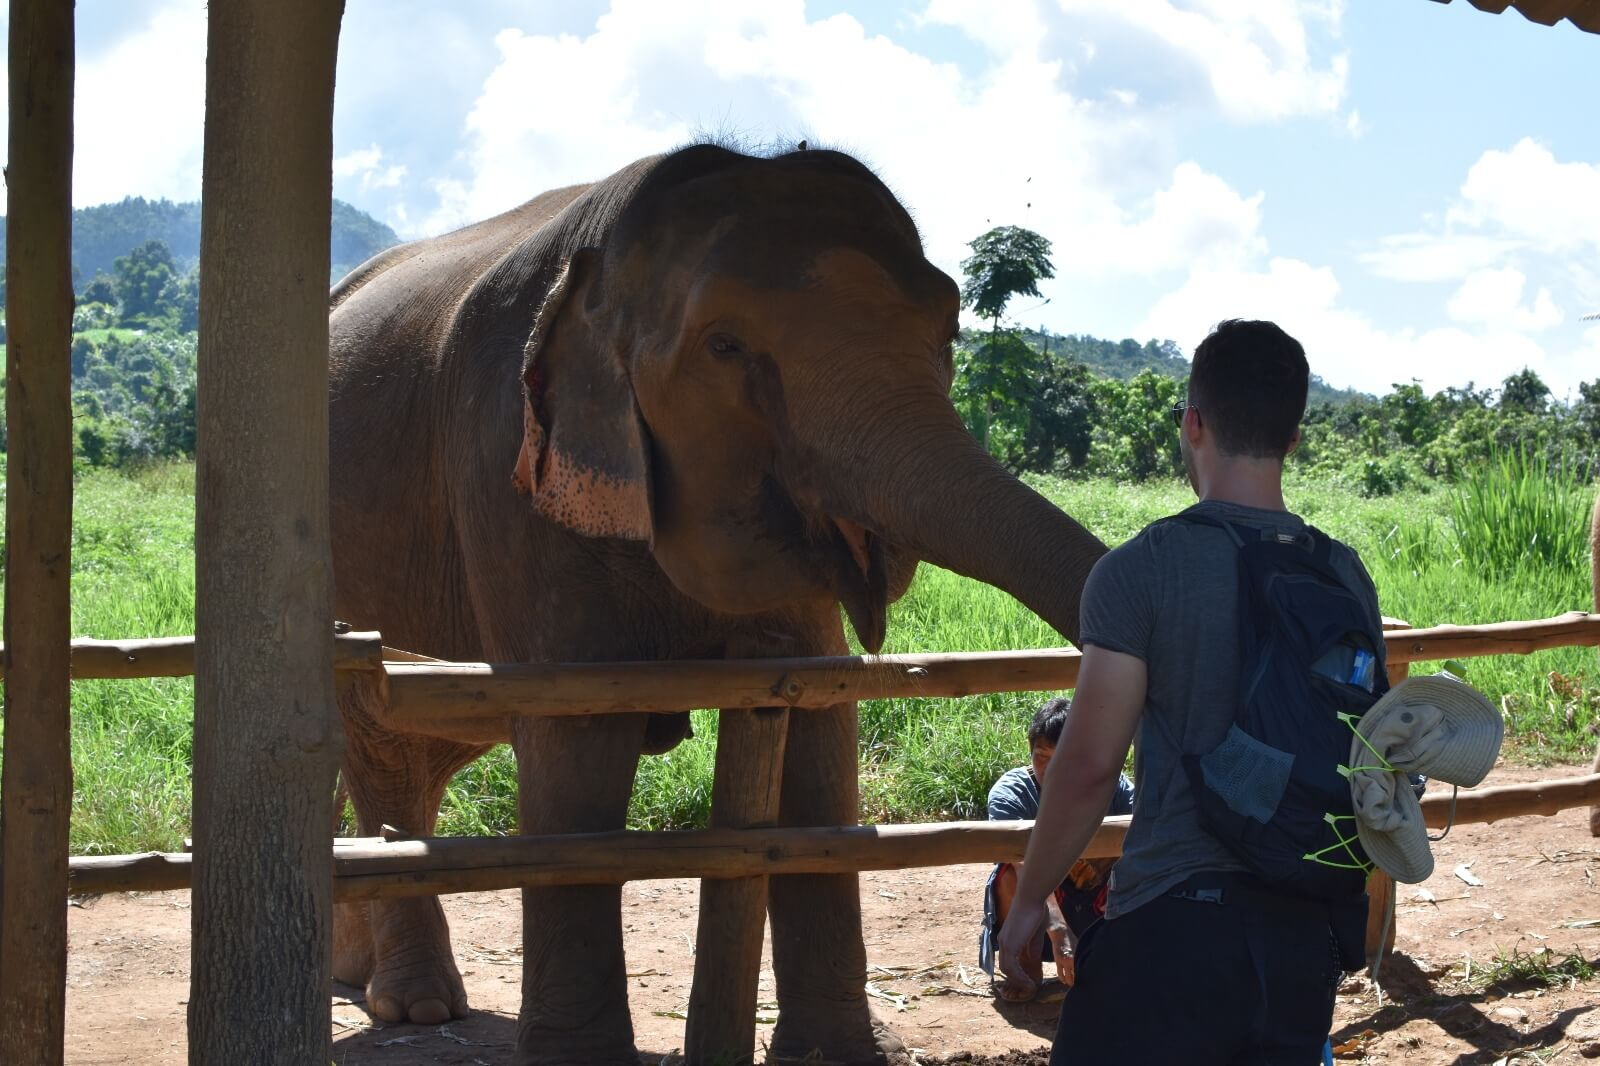 backpacker füttert elefant in chiang mai mit bananen im elephant nature park südostasien-reiseblog ticket im rahmen der reisevorbereitung südostasien gebucht